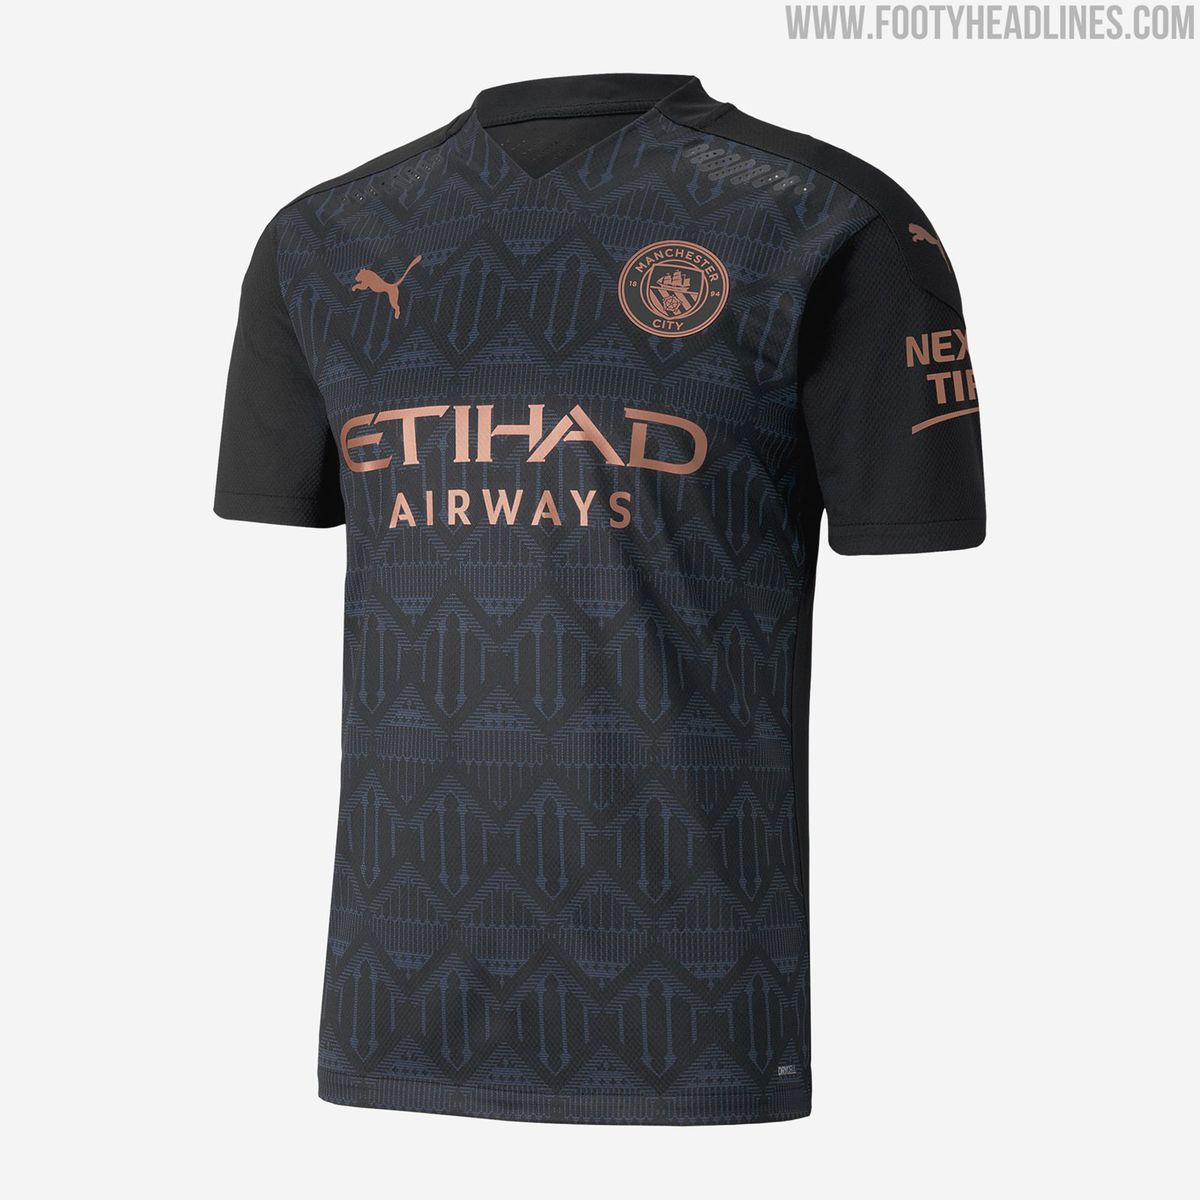 European soccer's best (and worst) jerseys this season, reviewed ...